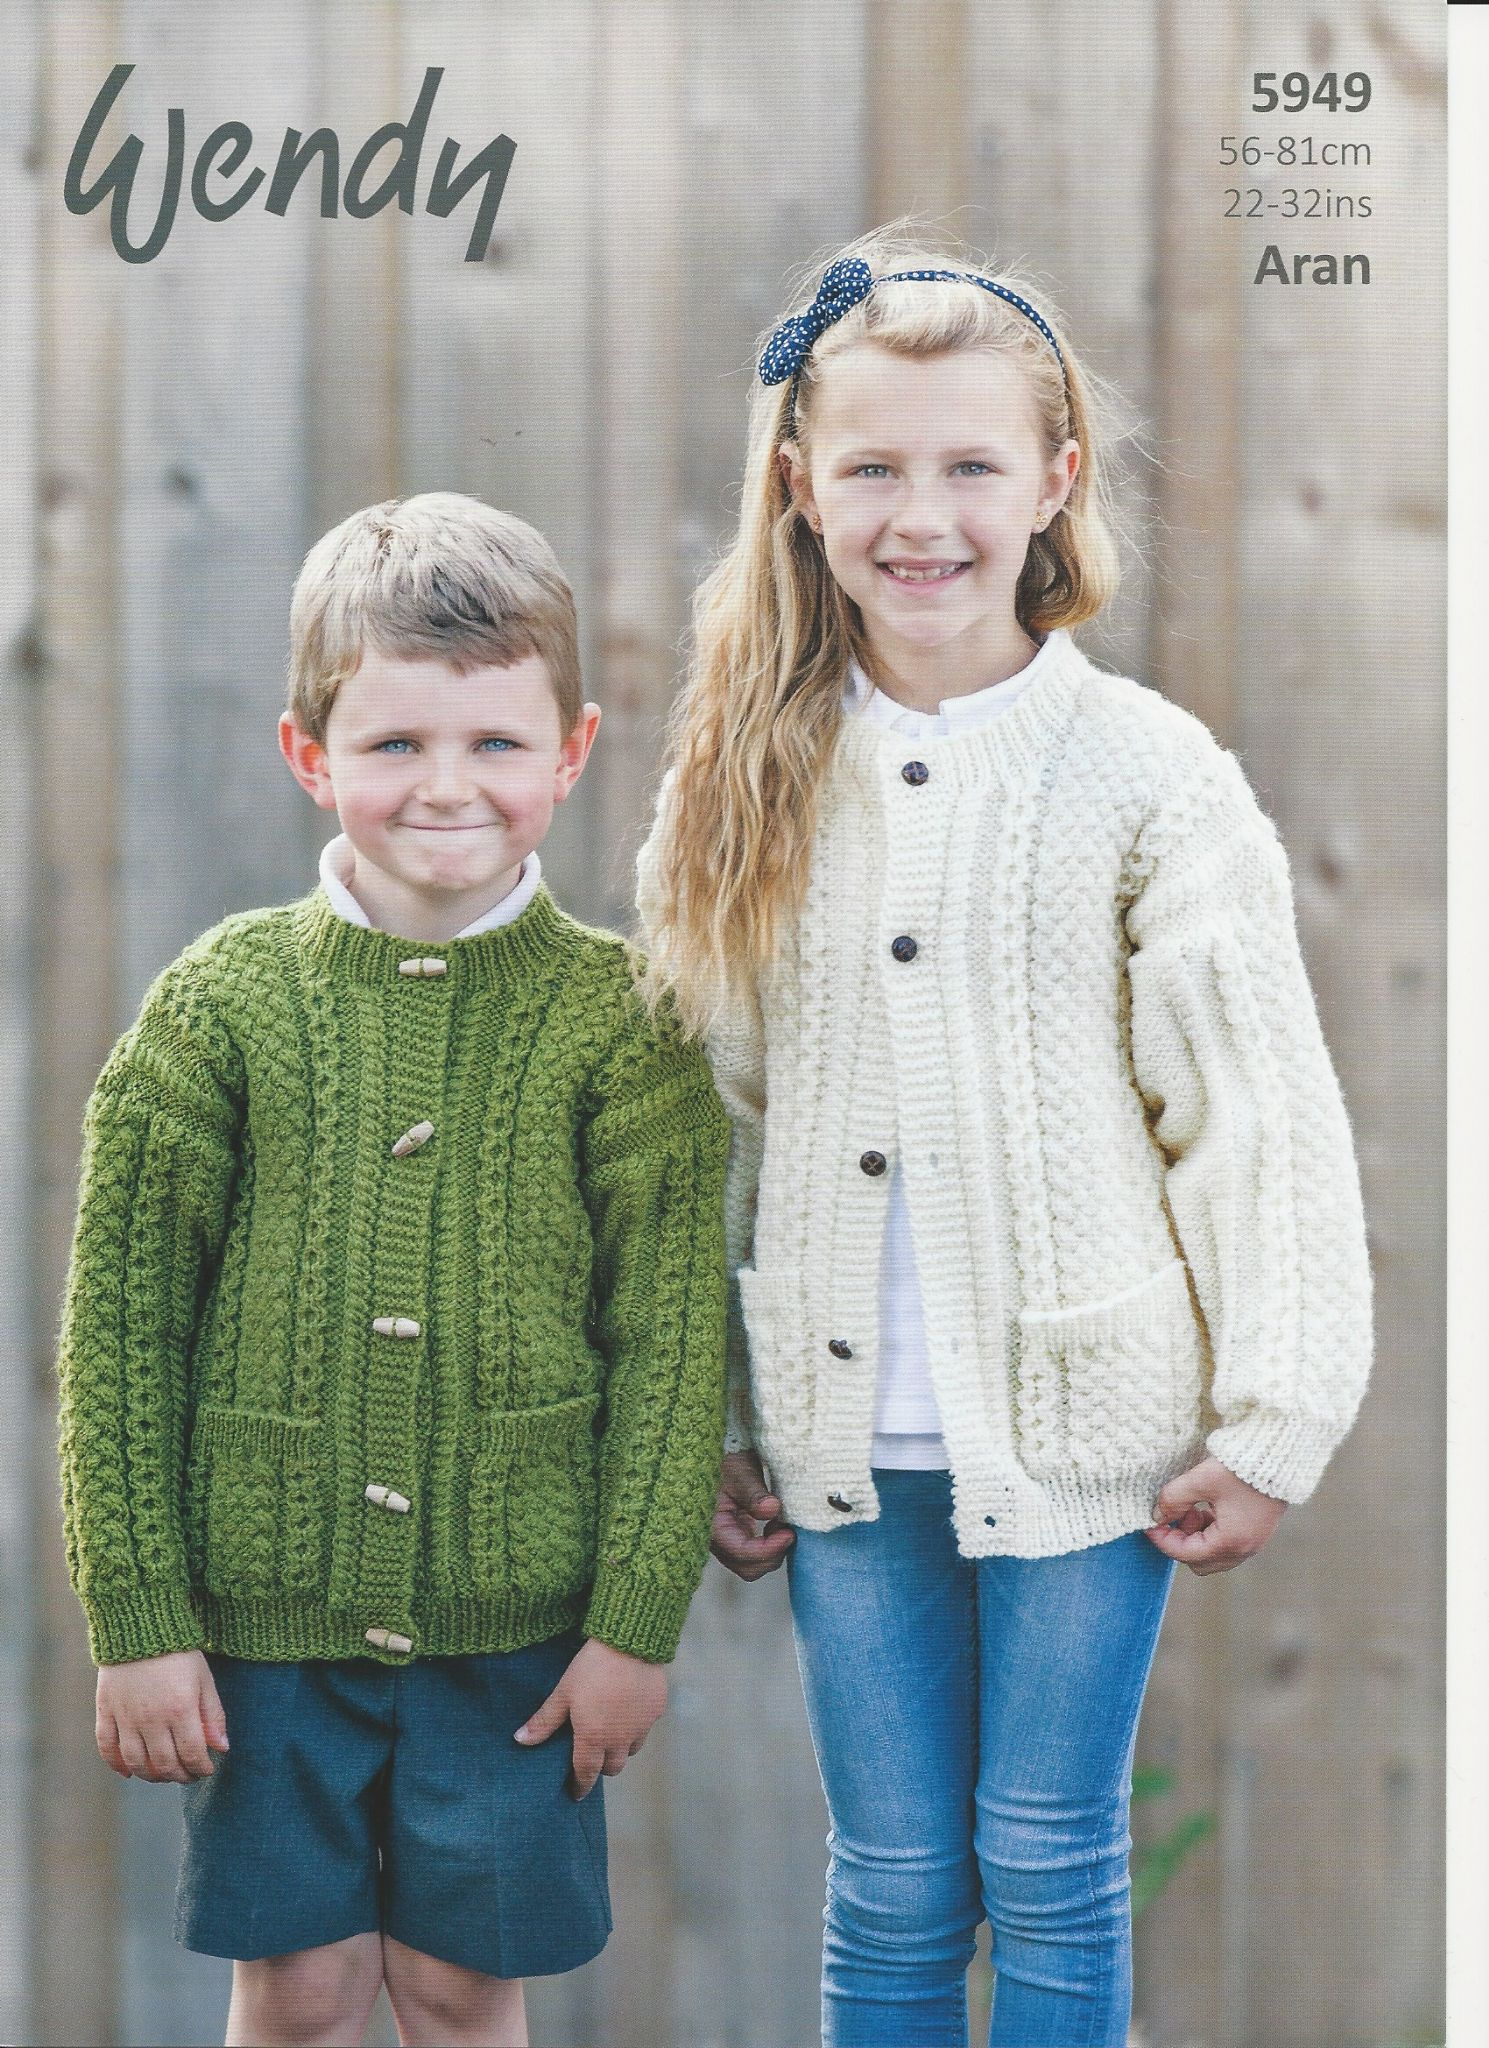 Childrens Aran Knitting Patterns Wendy Childrens Cardigans Aran Knitting Pattern 5949